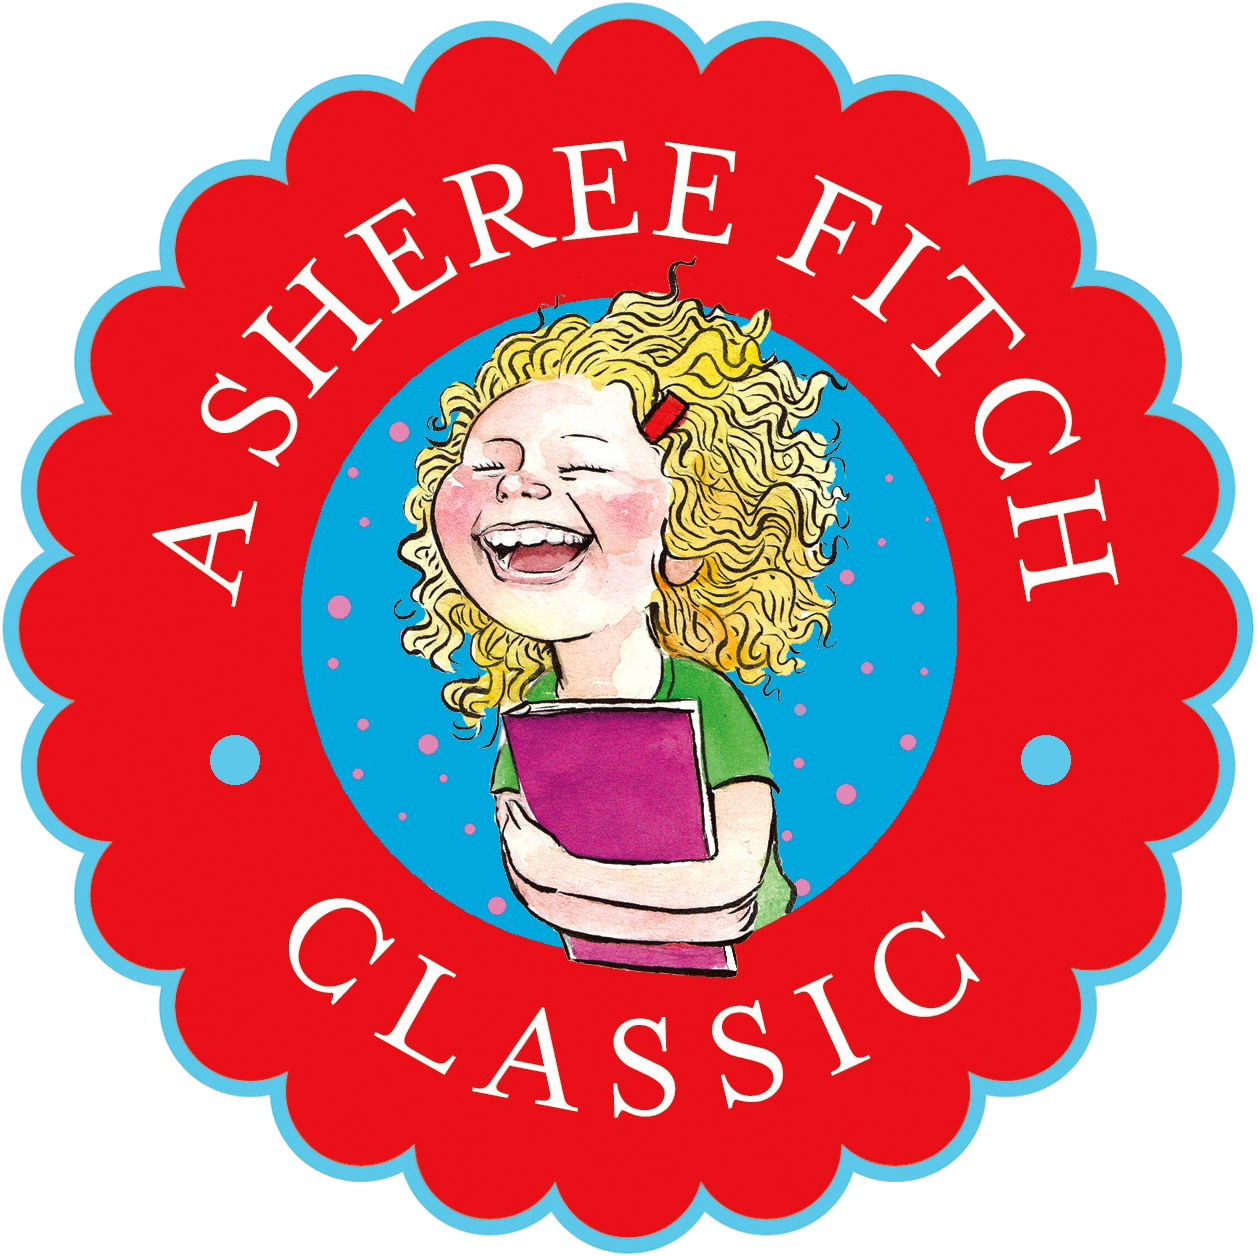 Surprise clipart surprise word. Breathe stretch write sheree